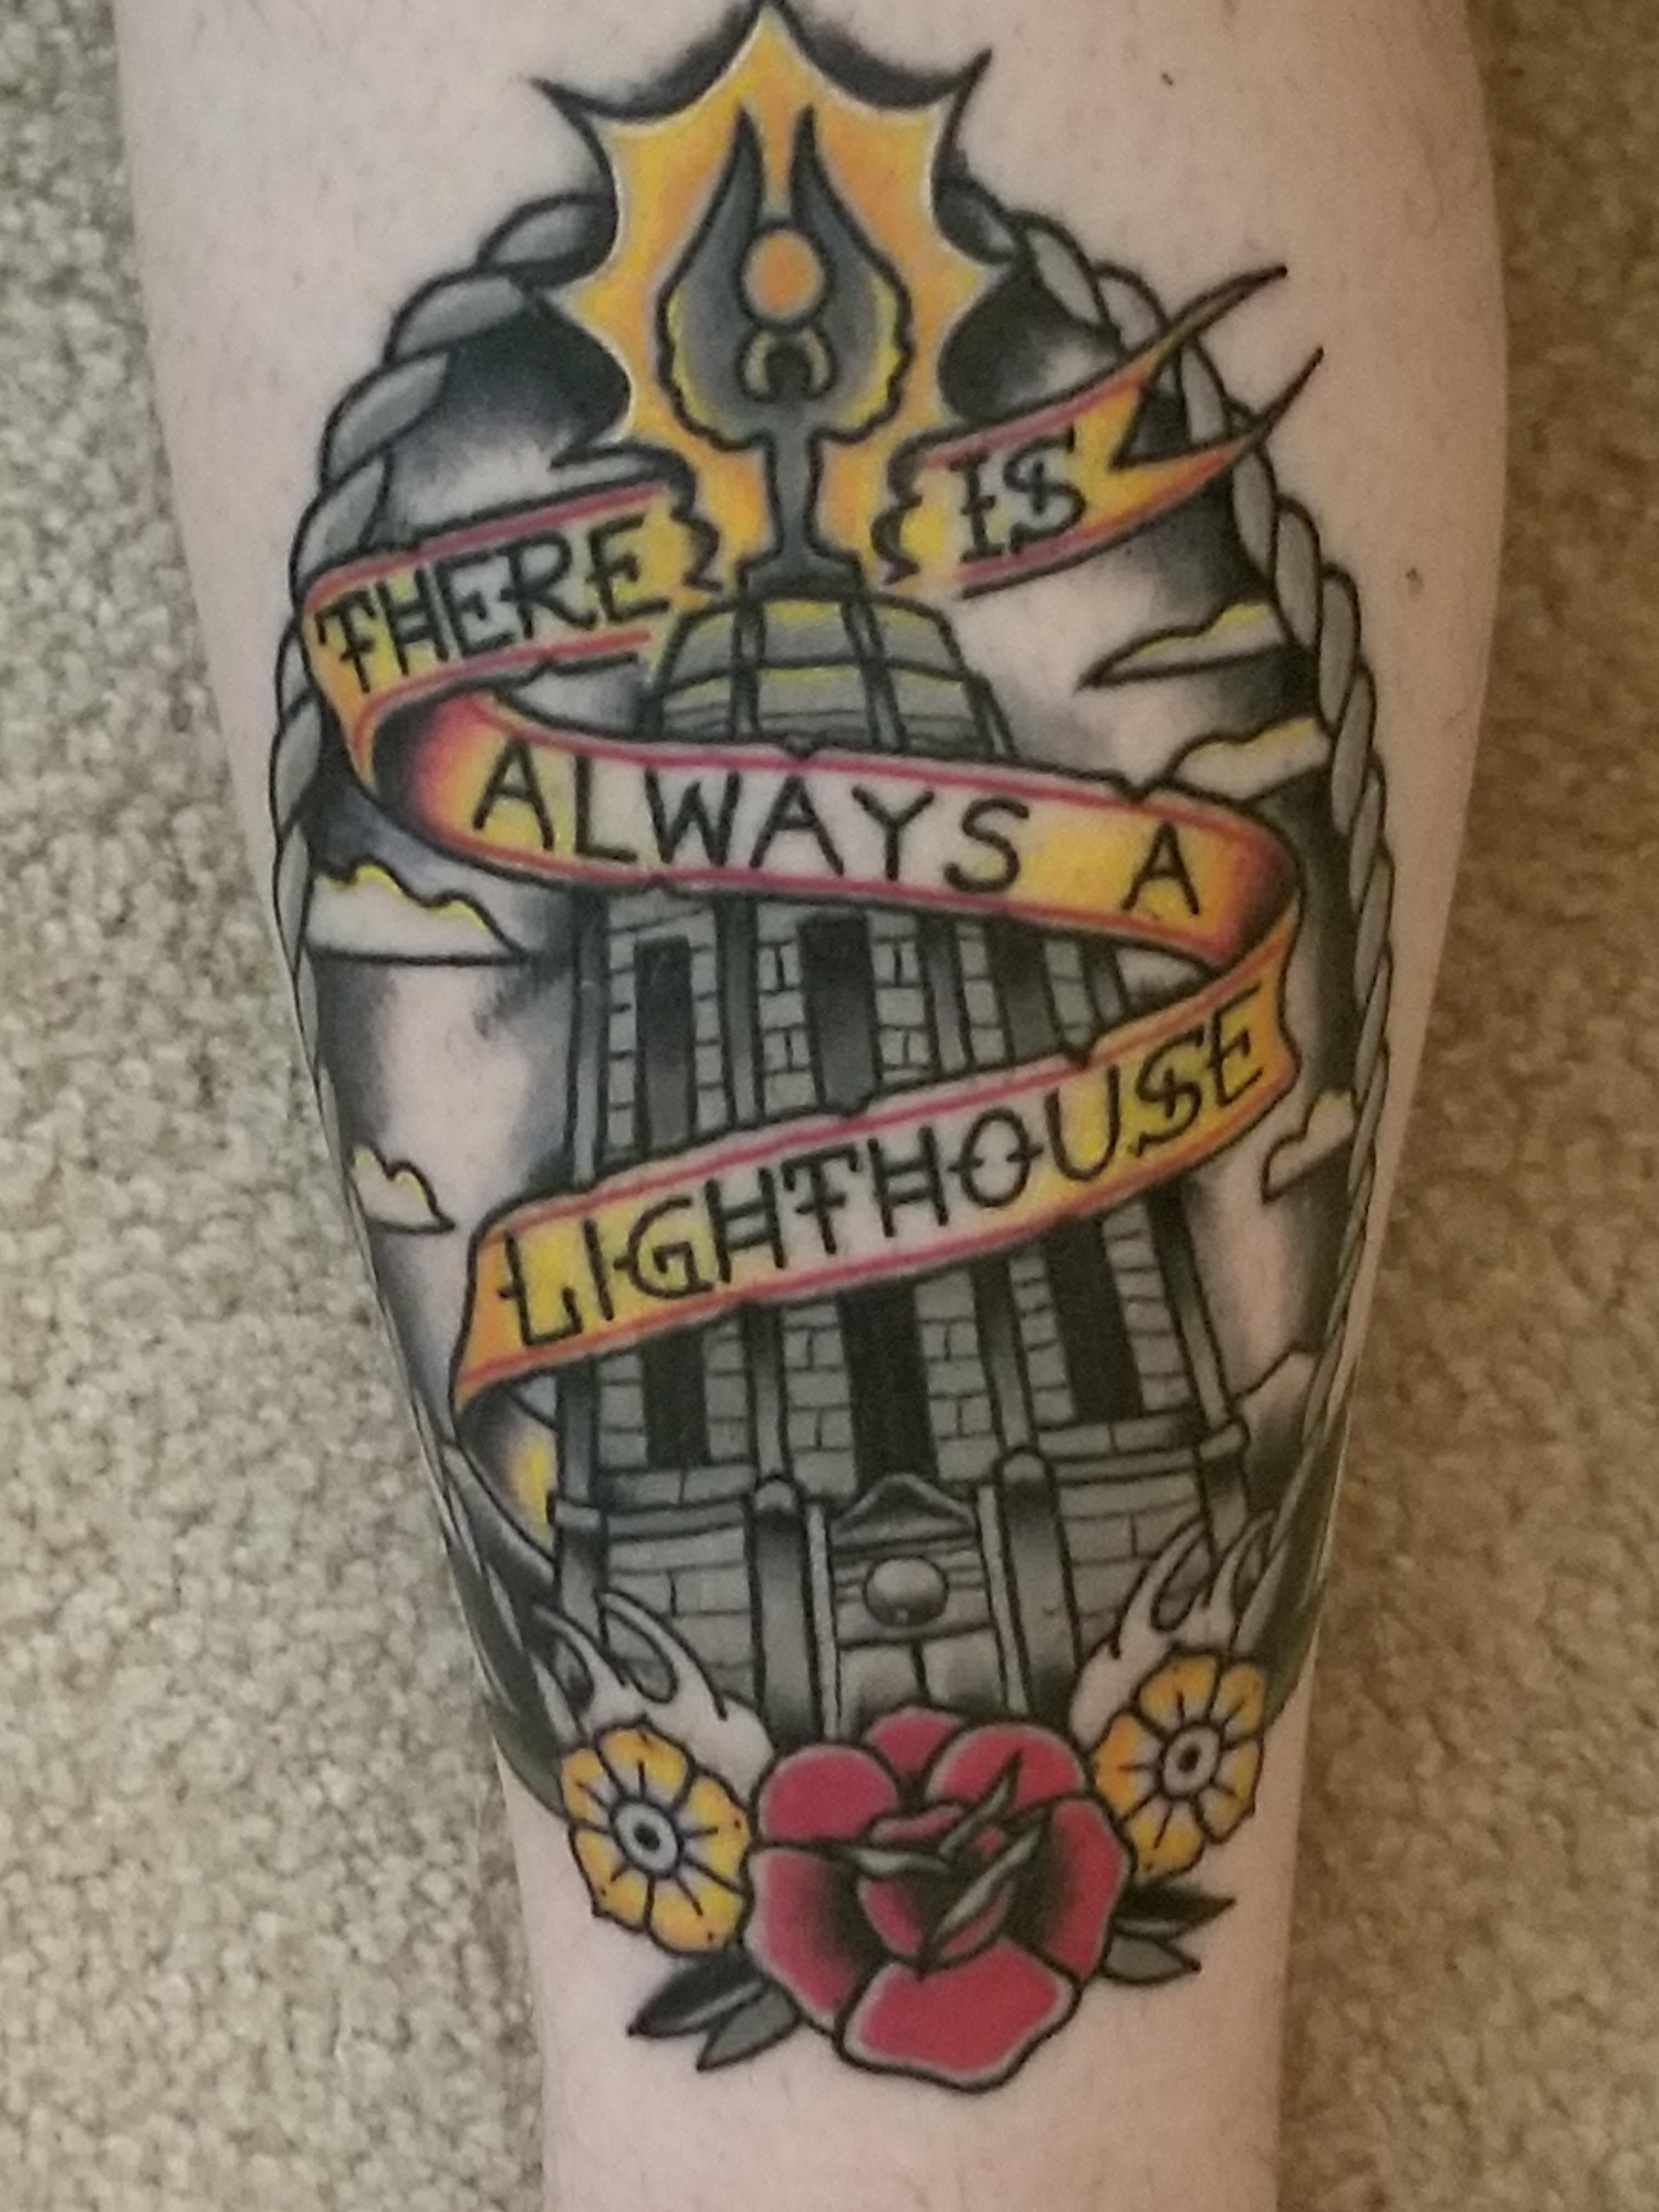 2231f8e08 My first tattoo the BioShock lighthouse. Done by Dustin Hardcastle @ Proton  Tattoo in DeKalb IL